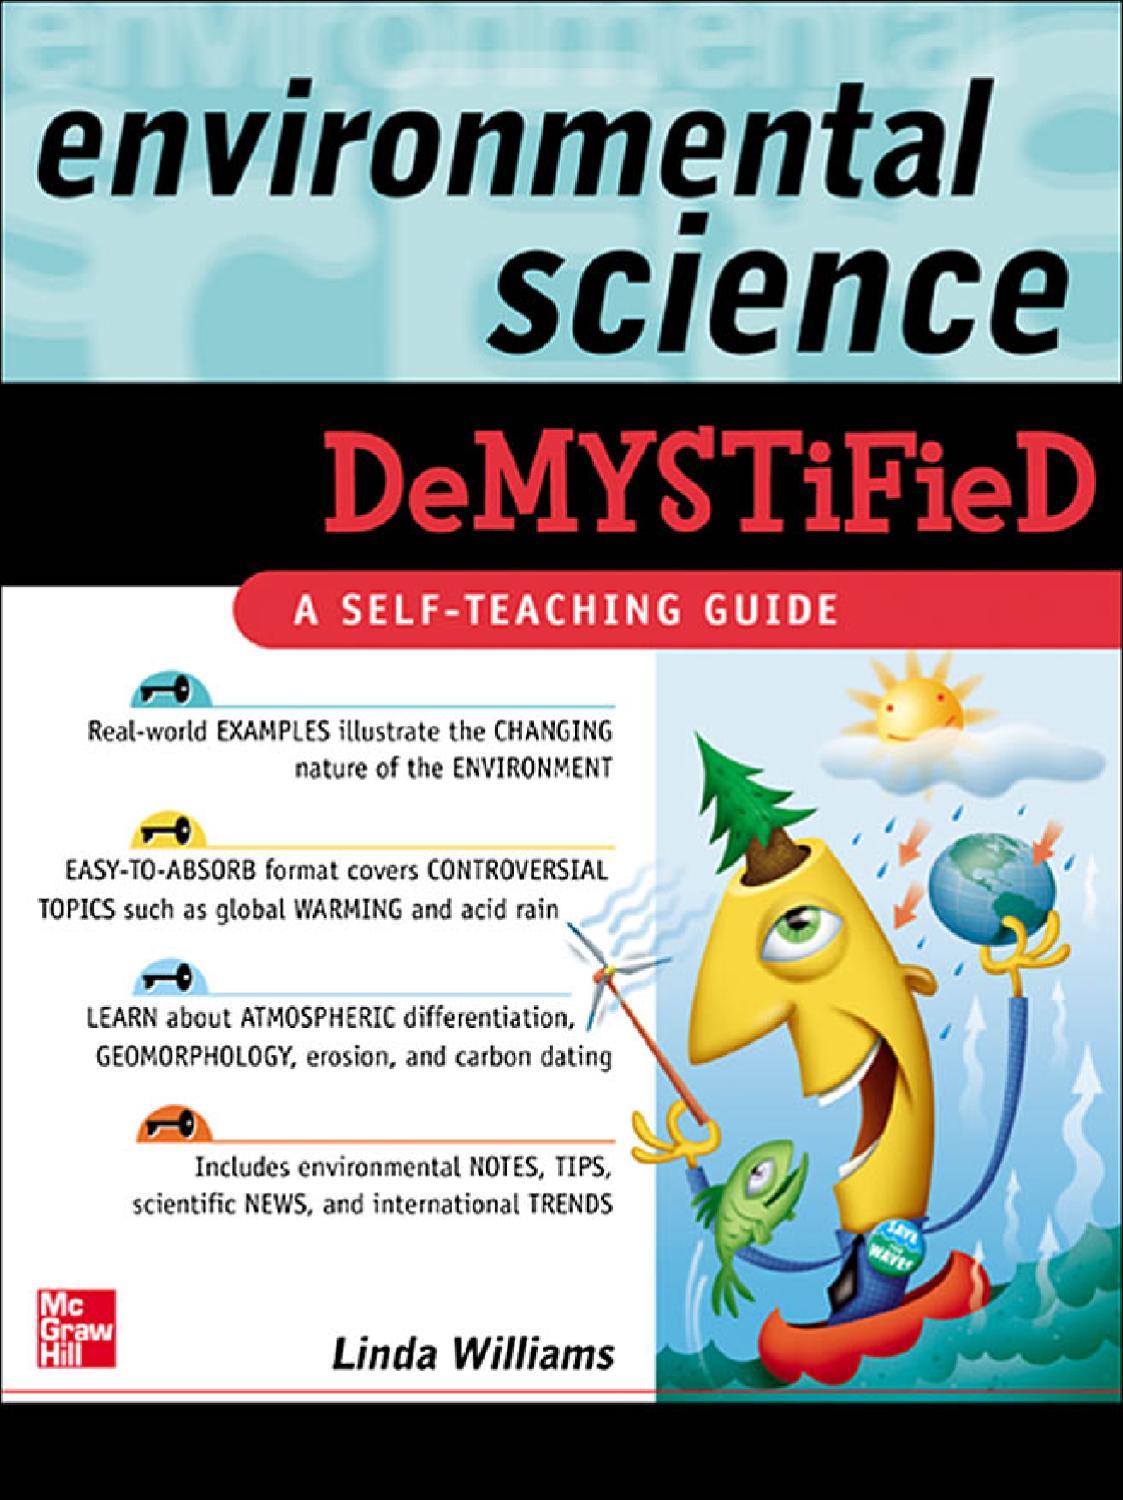 Environmental Science Demystified  by Imtiaz Ali - issuu